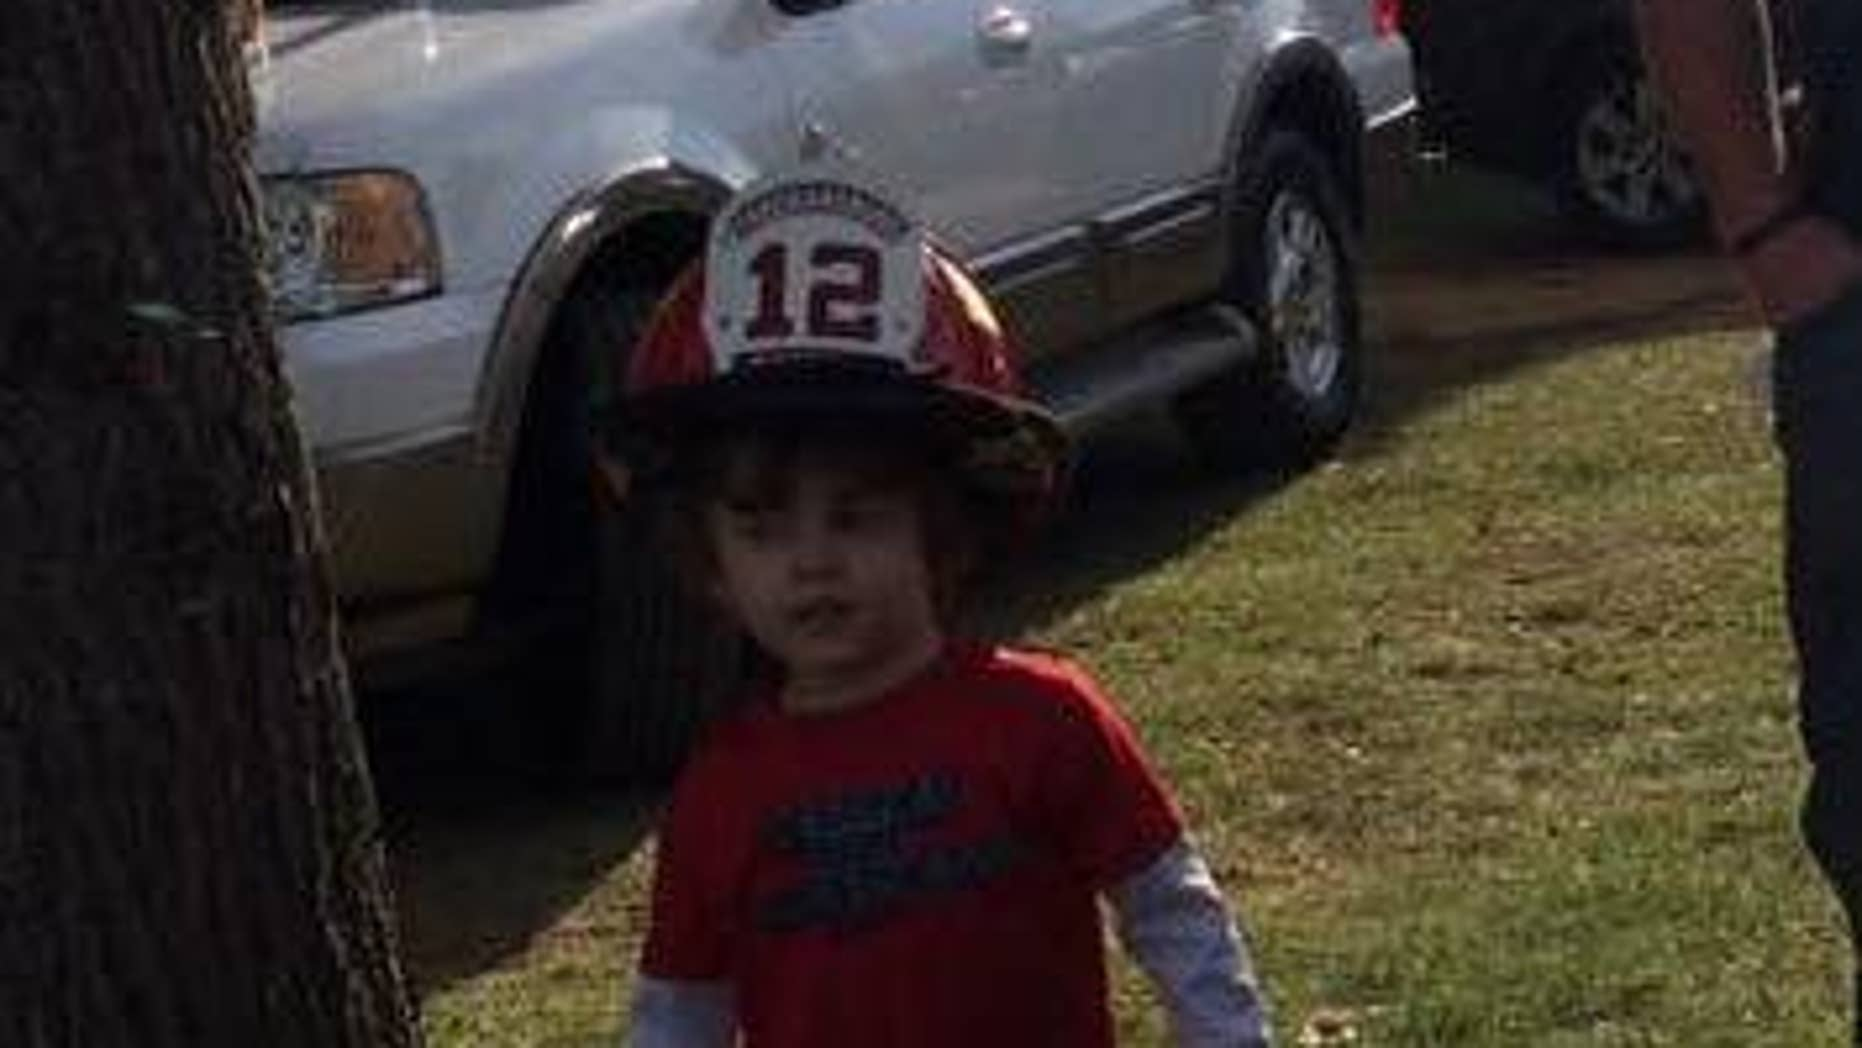 Bentley Koch was identified as the boy who died.